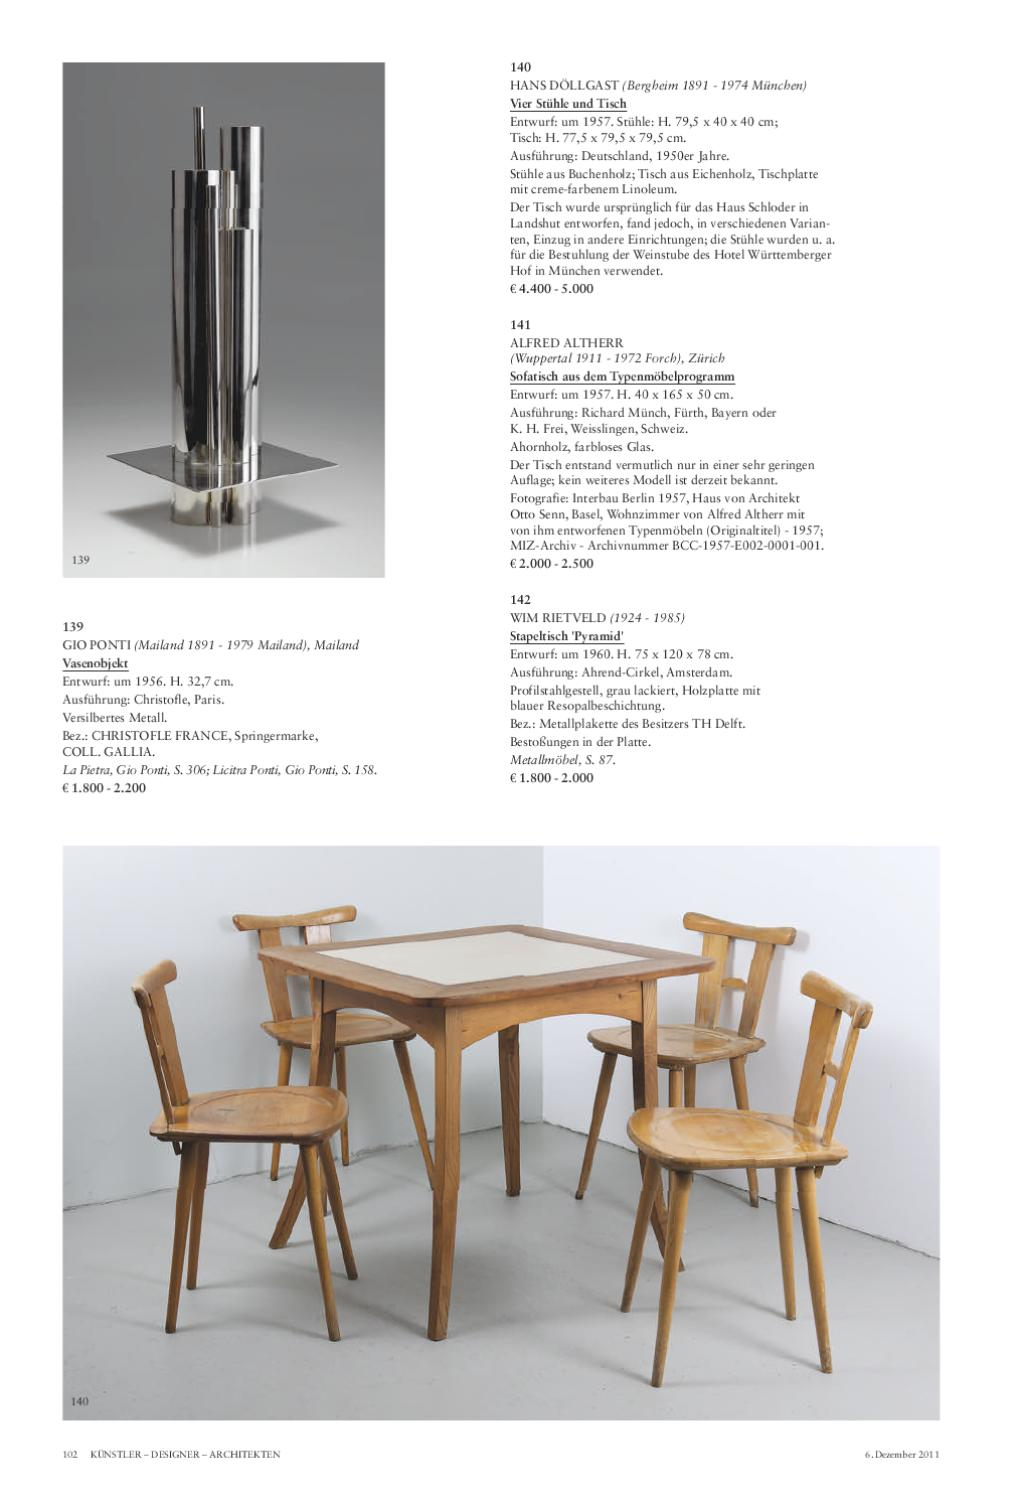 Auction 100C   Catalogue   Quittenbaum Art Auctions By Quittenbaum  Kunstauktionen GmbH   Issuu